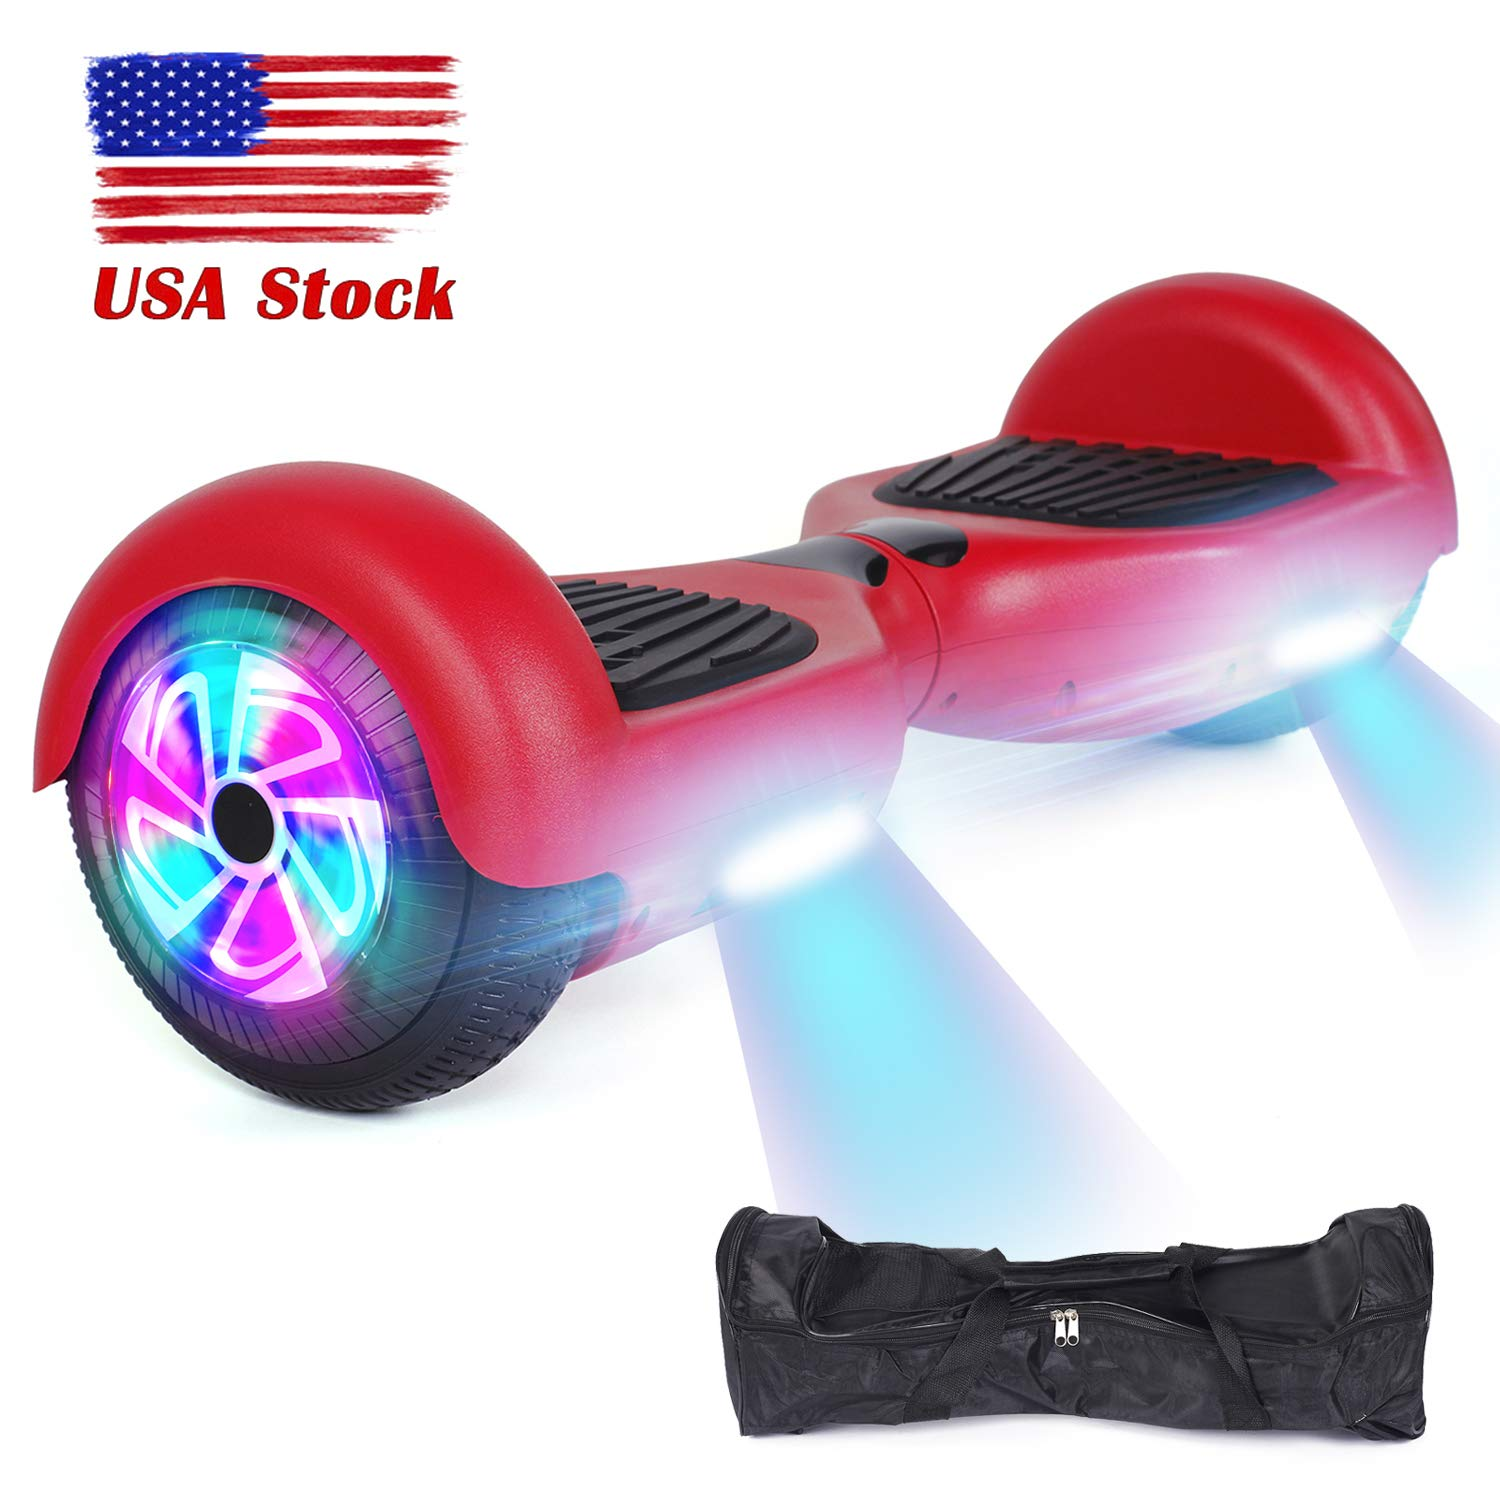 YHR Hoverboard Flashing Wheel Hover Board 6.5'' Self Balancing Scooter -UL Certified with Free Bag-Red